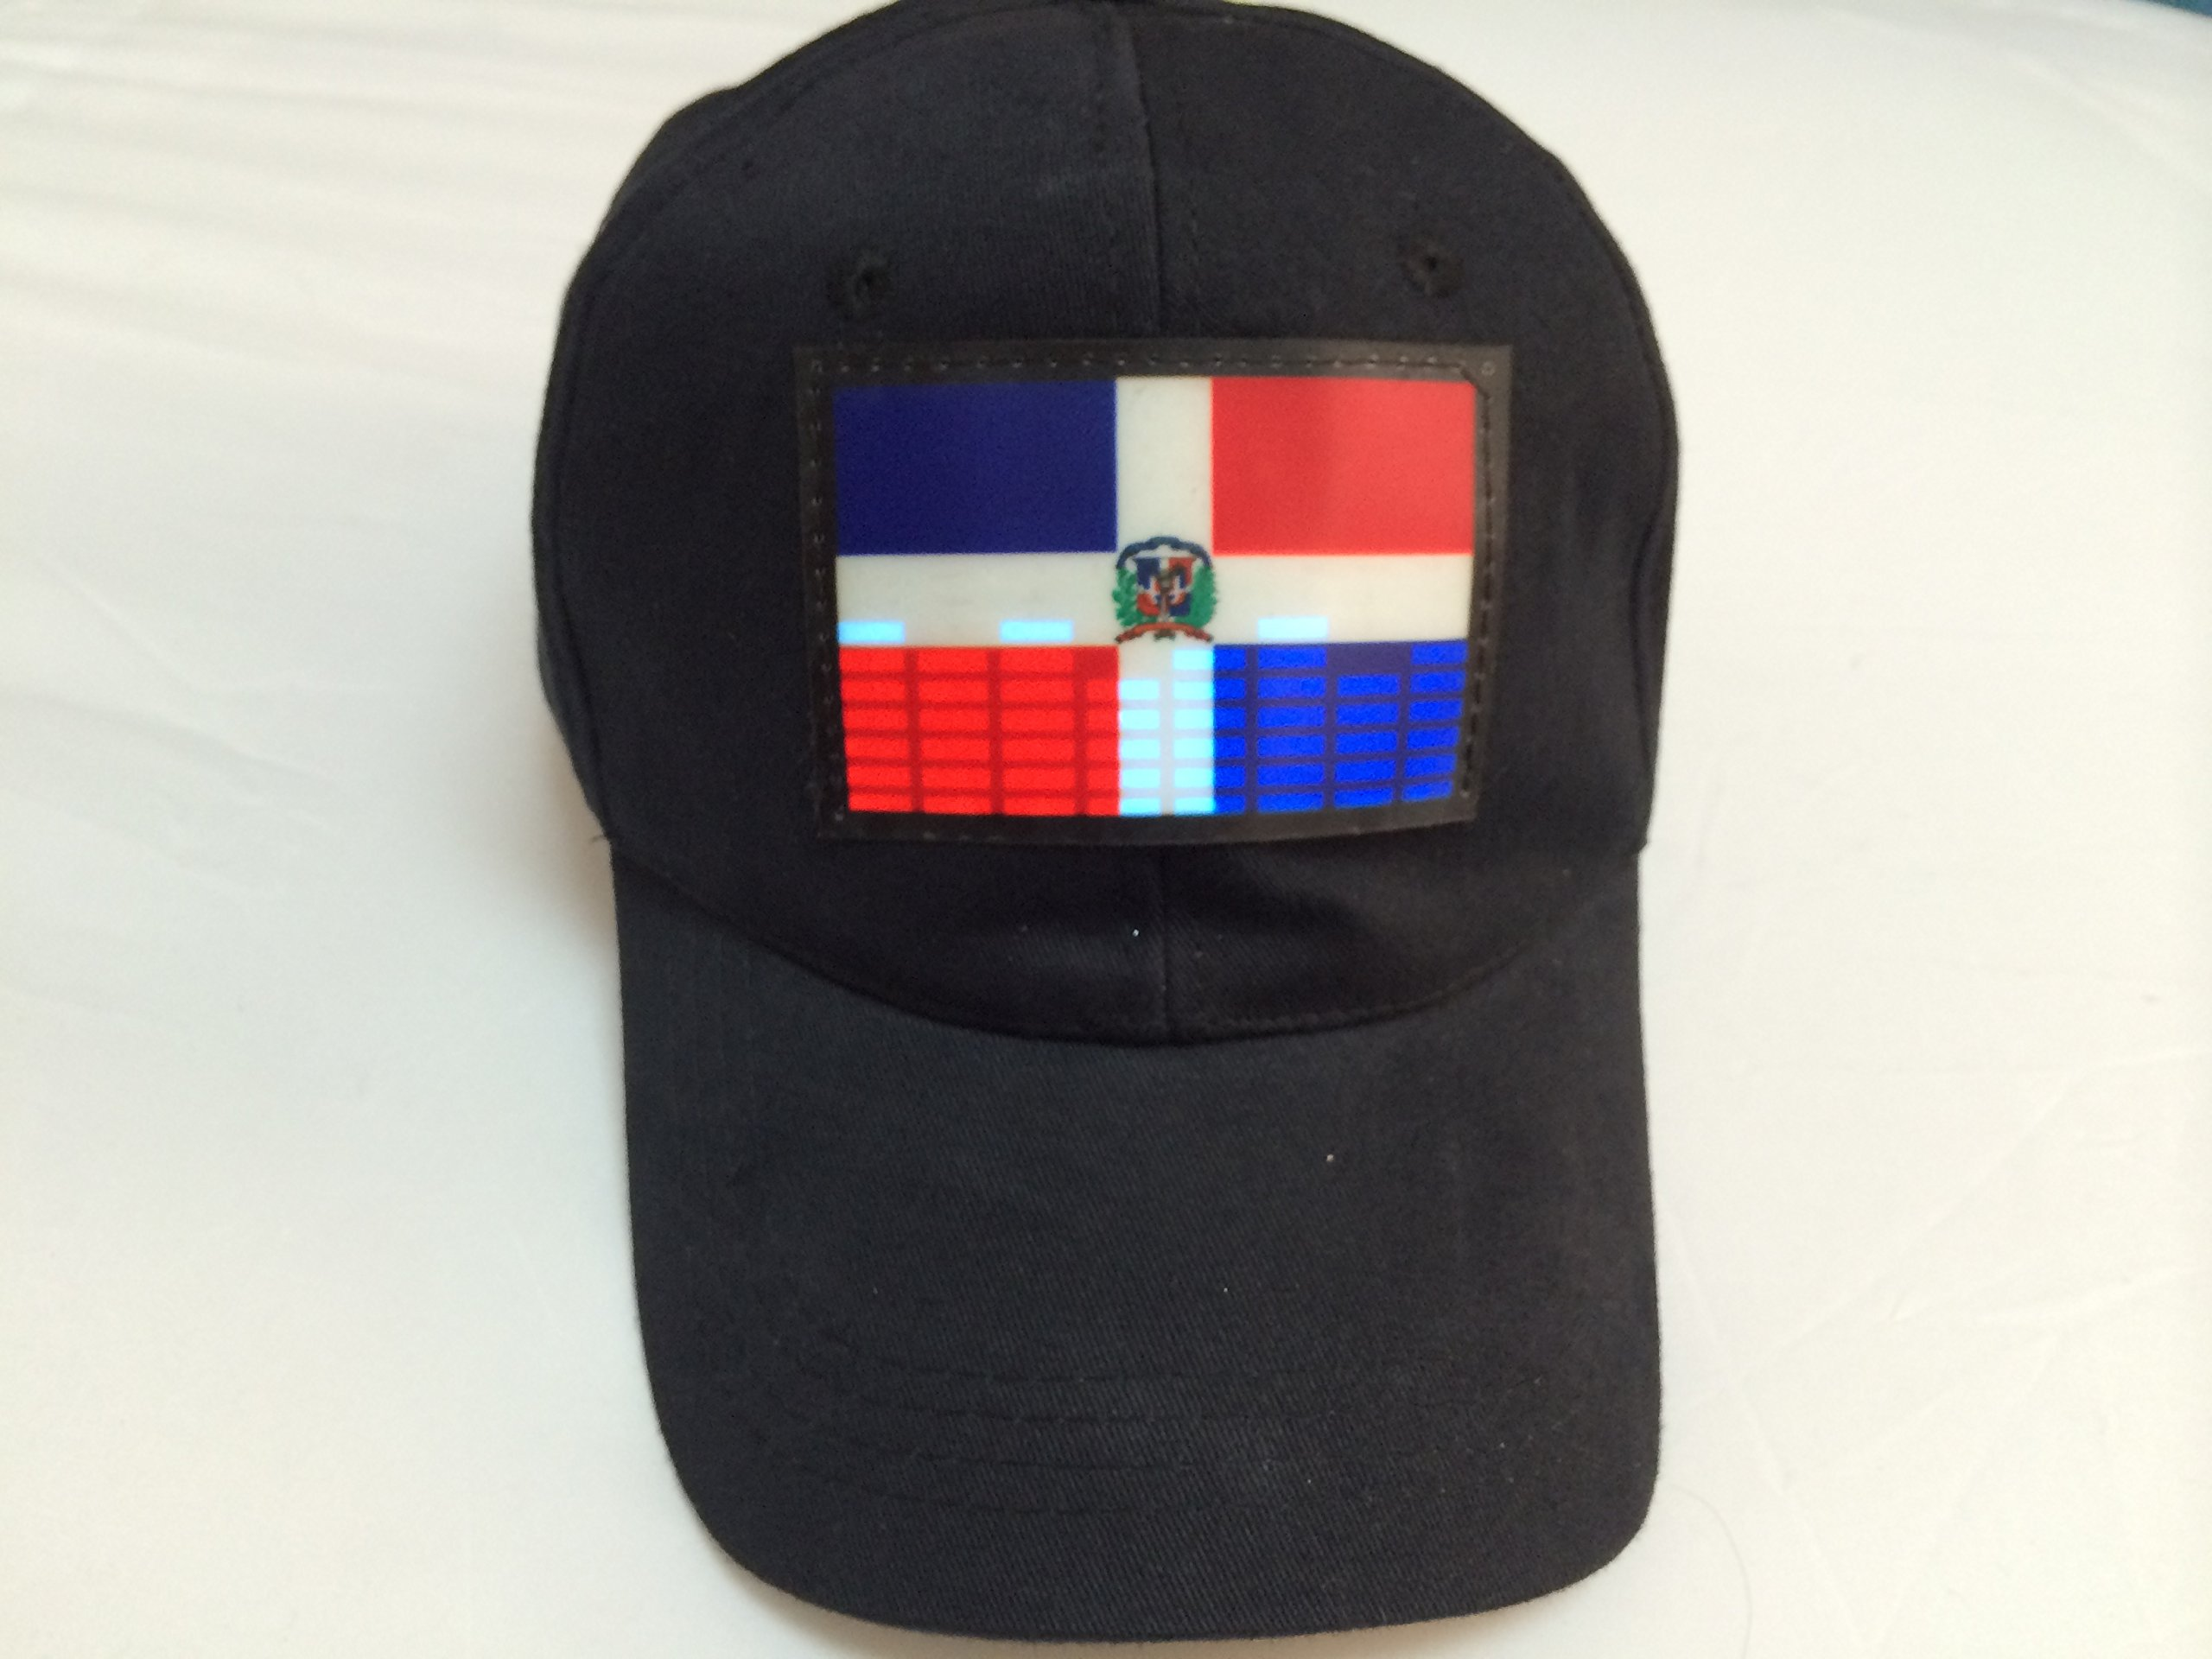 Accessory 4u Inc Dj LED Flashing Sound Activated Dominican Republic Flag Led Light up Disco Party Dance Hat